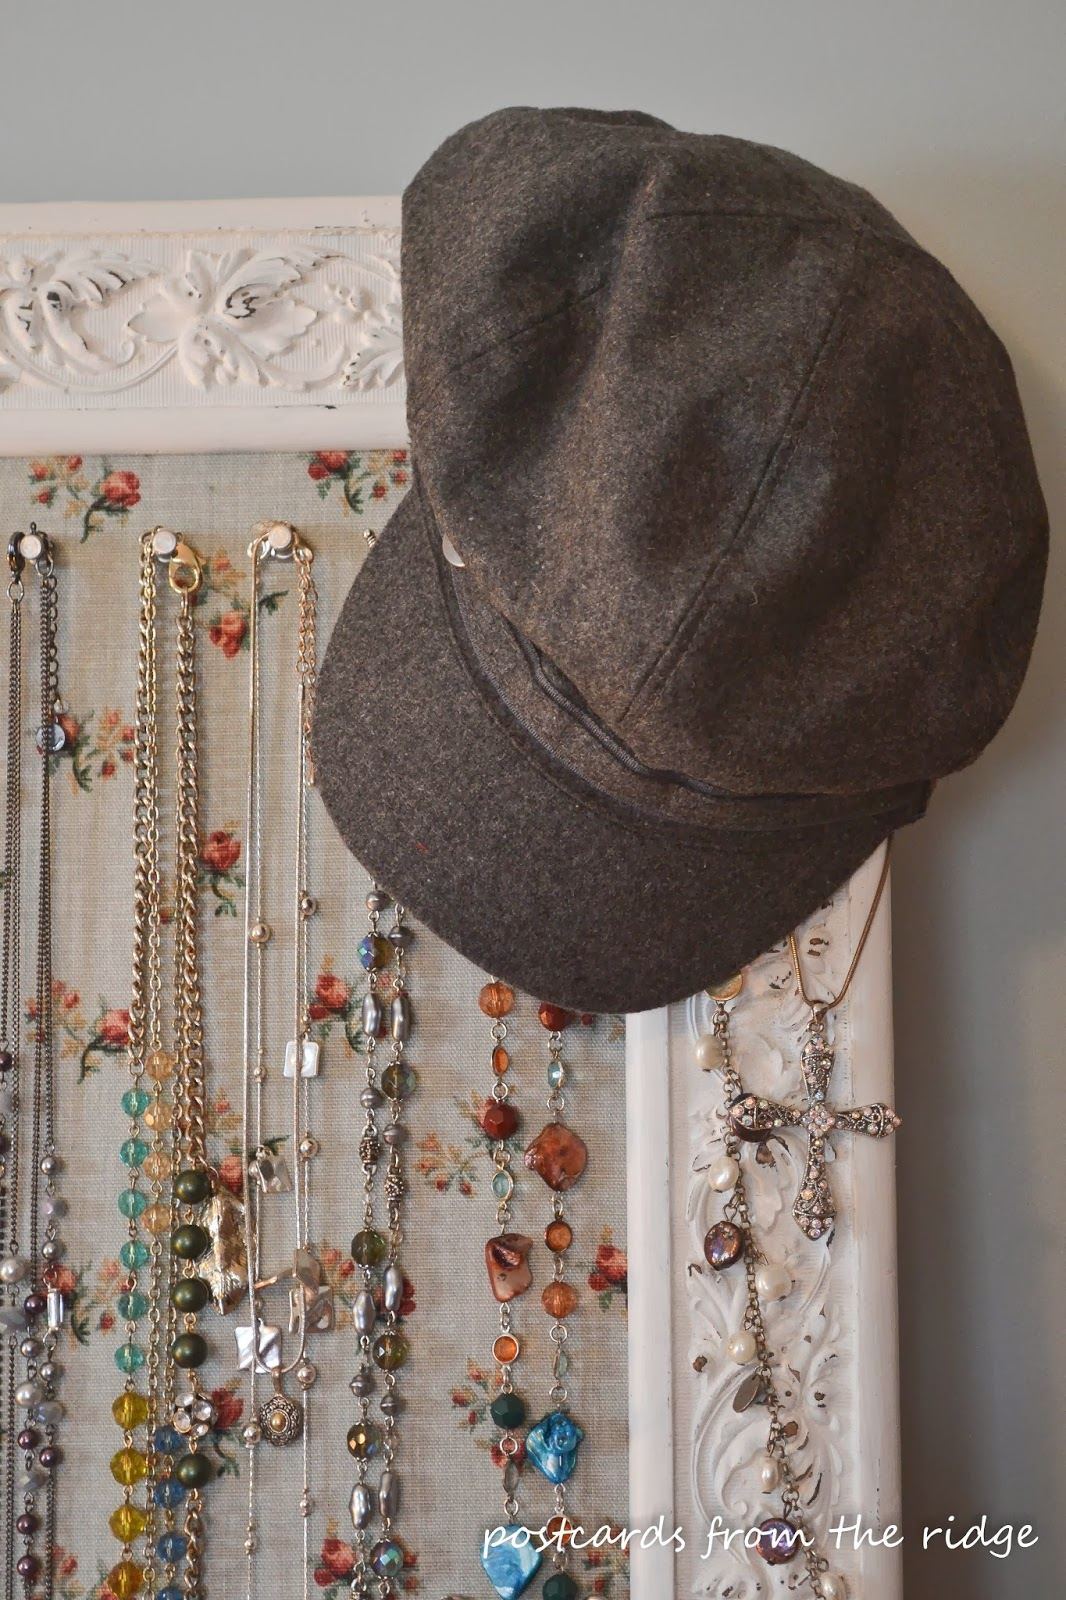 An old beat up frame turned into a jewelry board, plus other great ideas for jewelry organization. Love the hat, too!